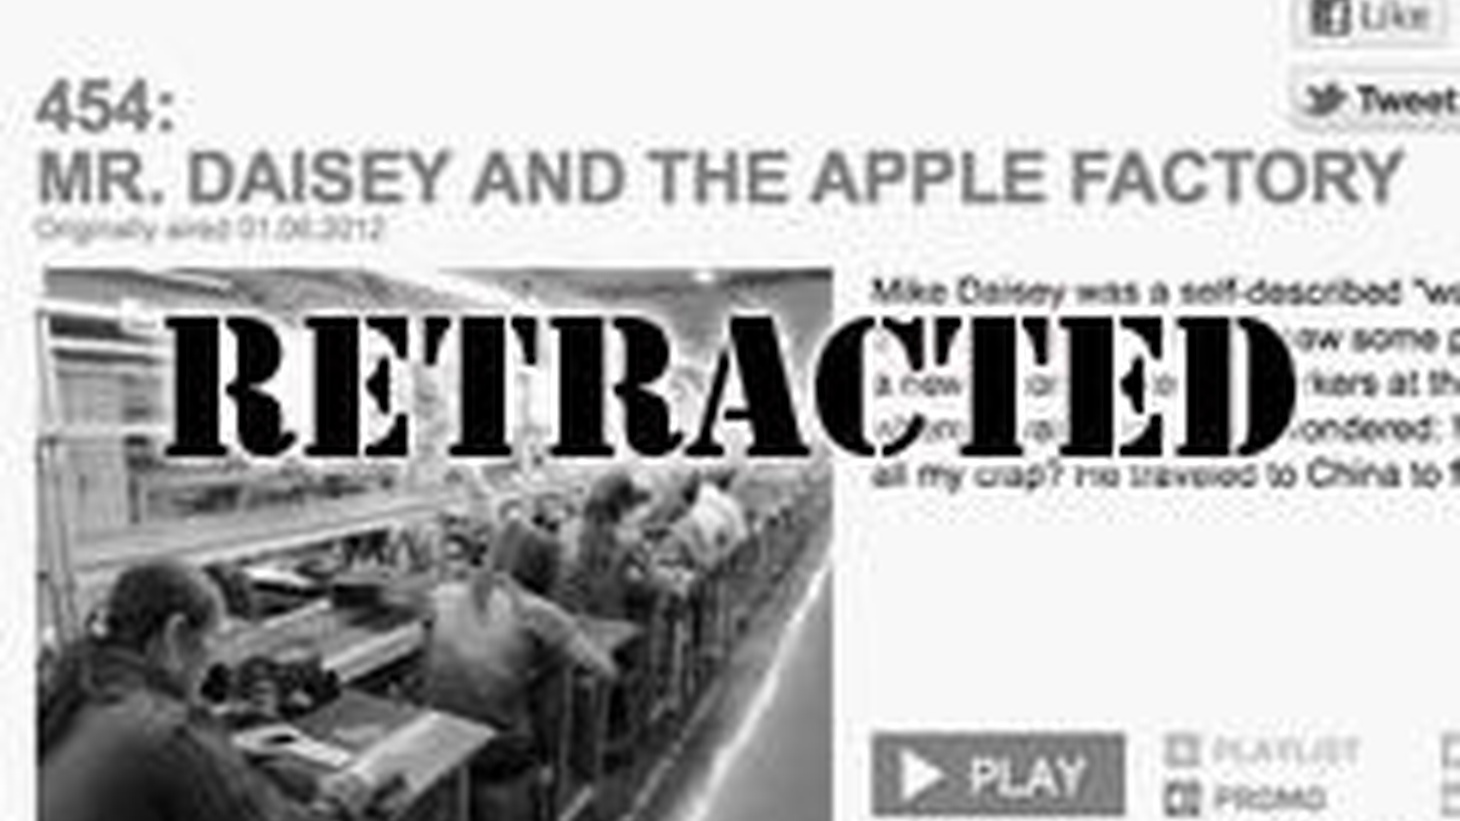 We've discovered that one of our most popular episodes was partially fabricated. We devote the entire hour to detailing the errors in 'Mr. Daisey Goes to the Apple Factory.